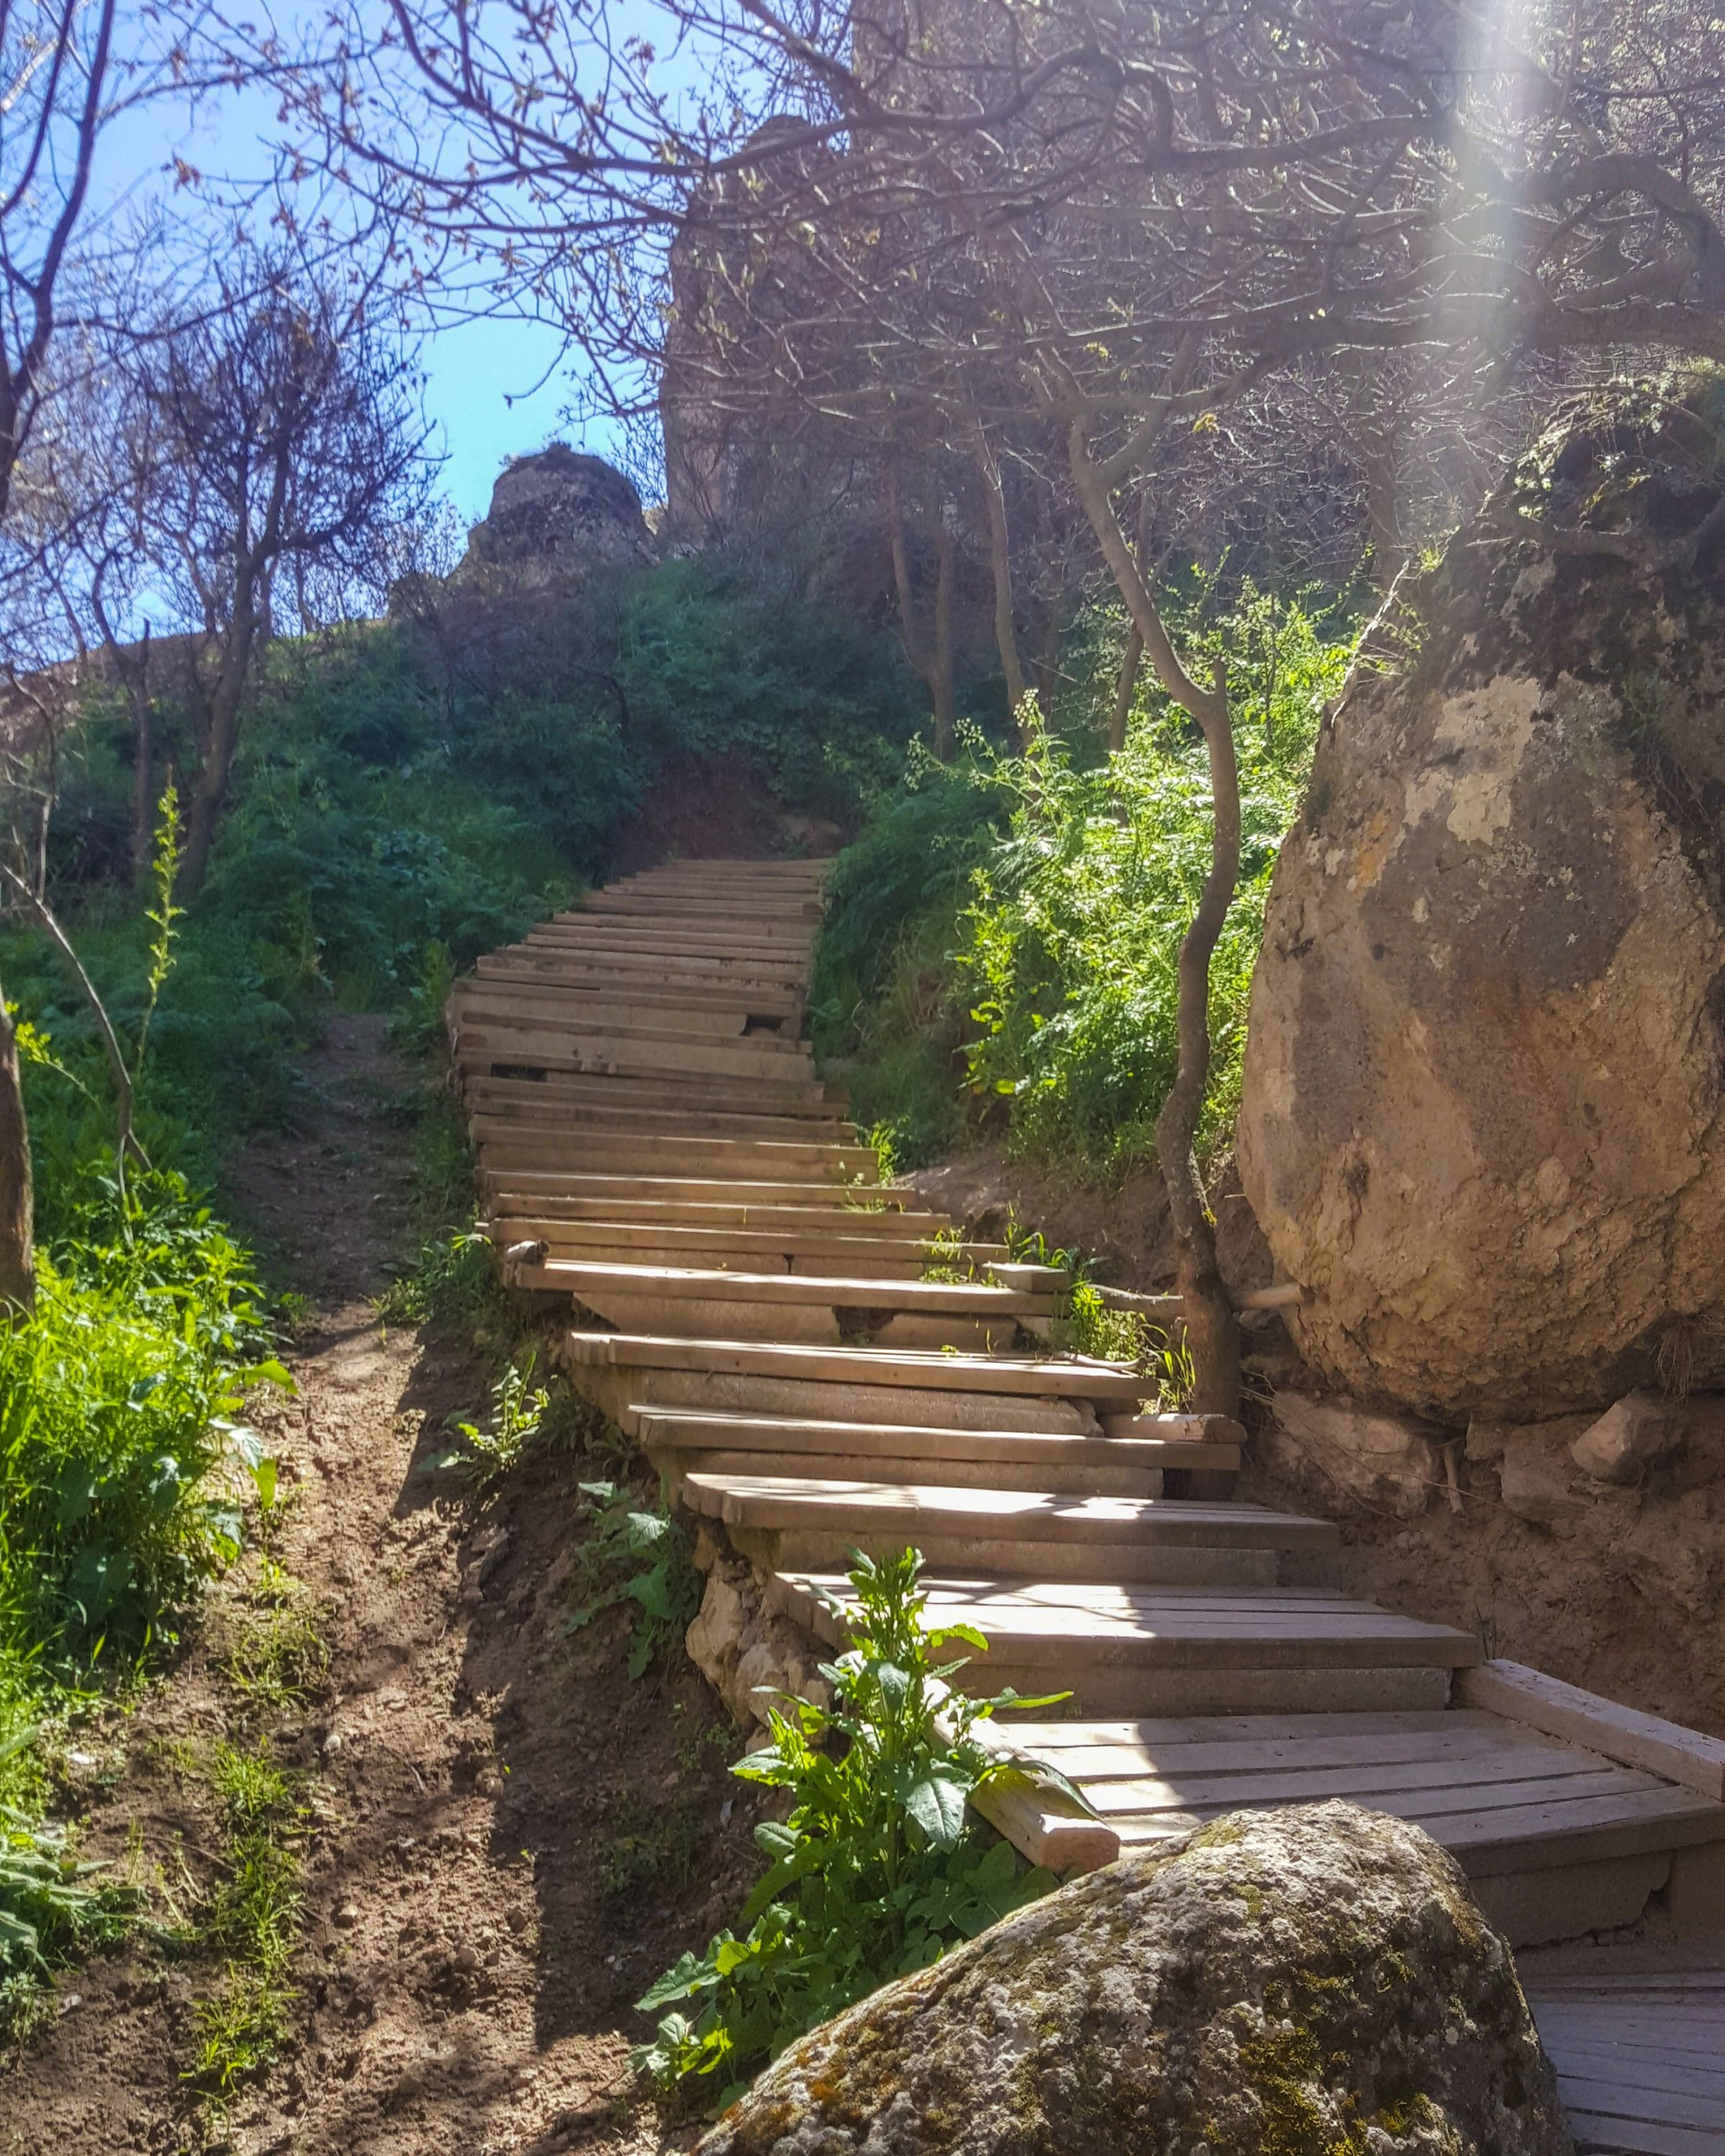 The churches in Ihlara Valley are built very high up, requiring you to climb a lot of steps if you want to see them. (Photo by Argun Konuk)